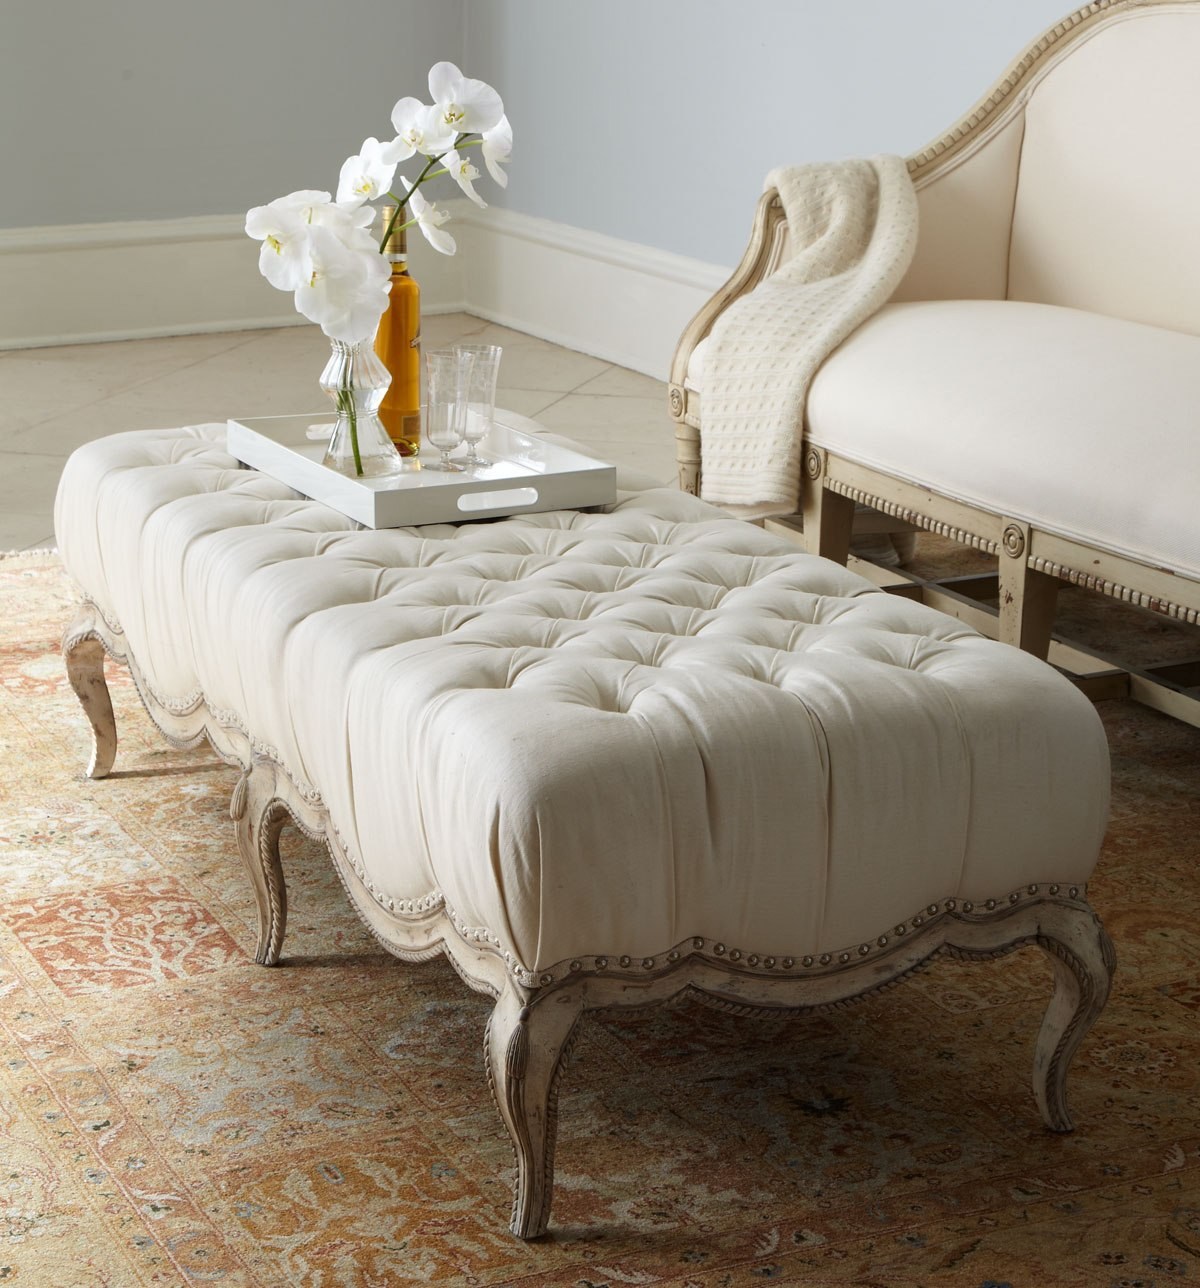 8 Plush Tufted Ottomans To Add Comfort And Functionality To ...